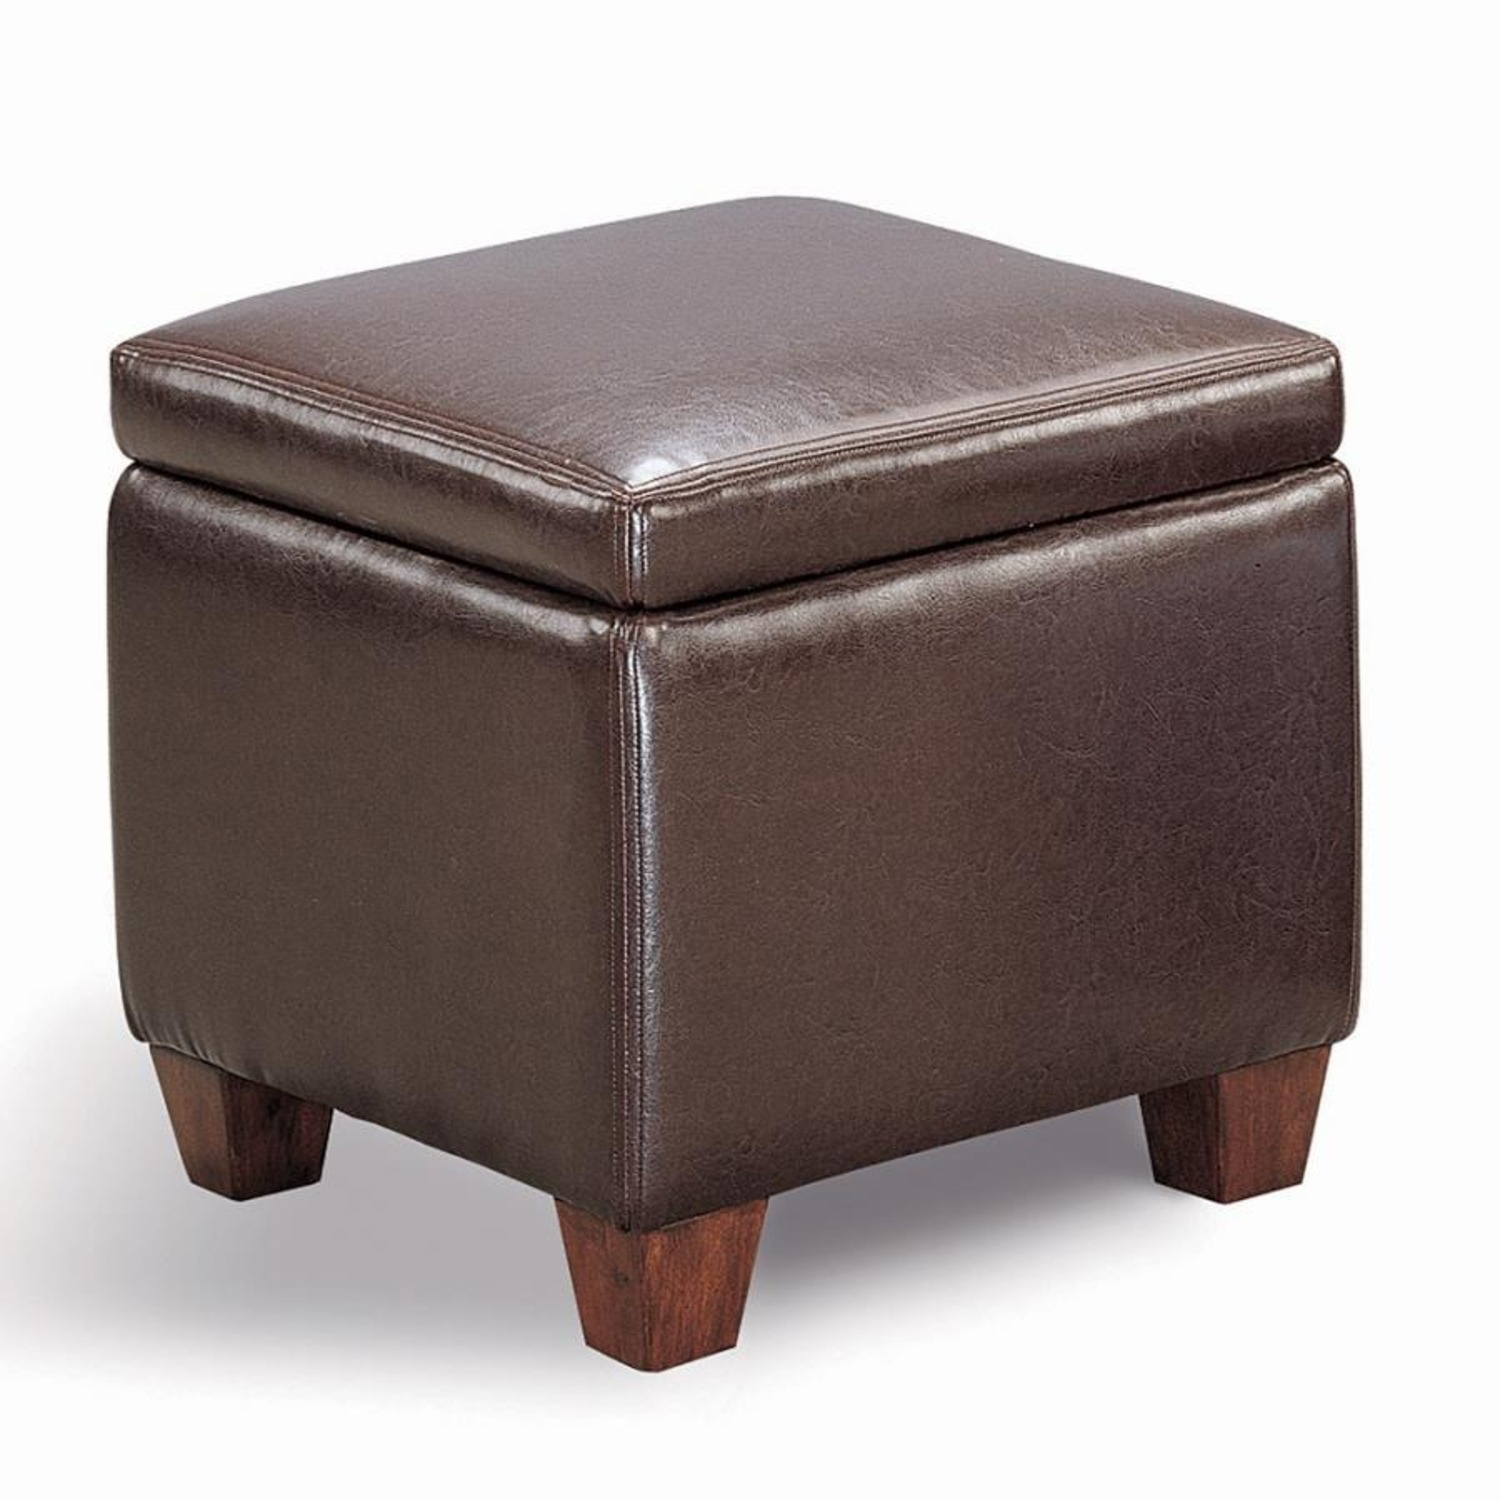 Ottoman In Cube-Shaped Dark Brown Finish - image-2